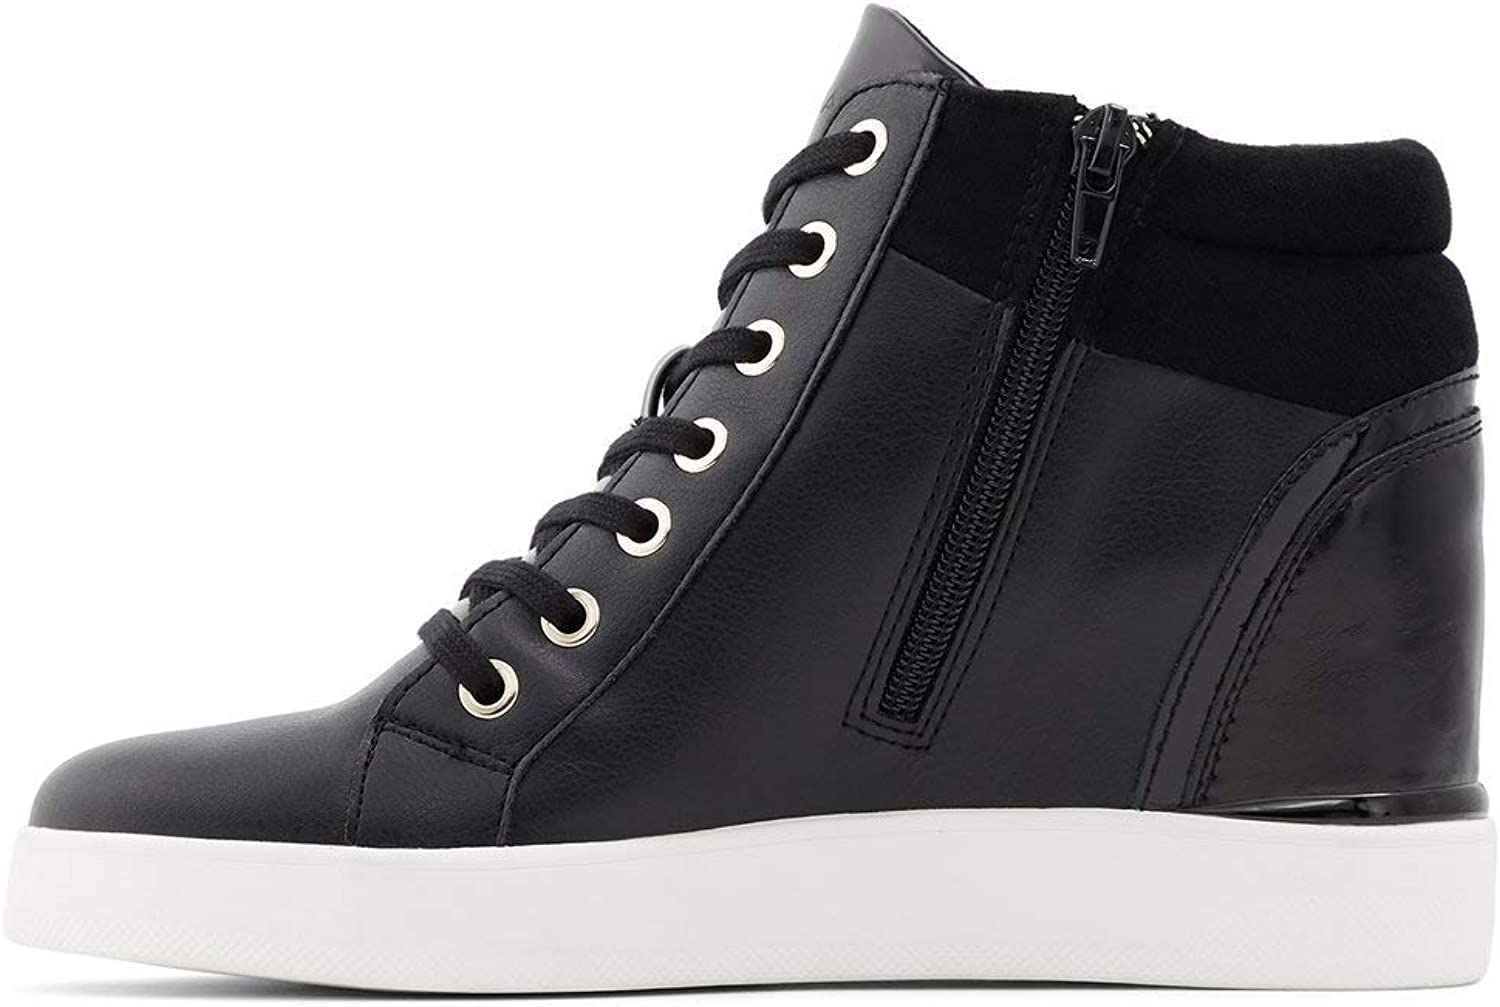 Casual Wedge Sneakers Shoes, Ailanna